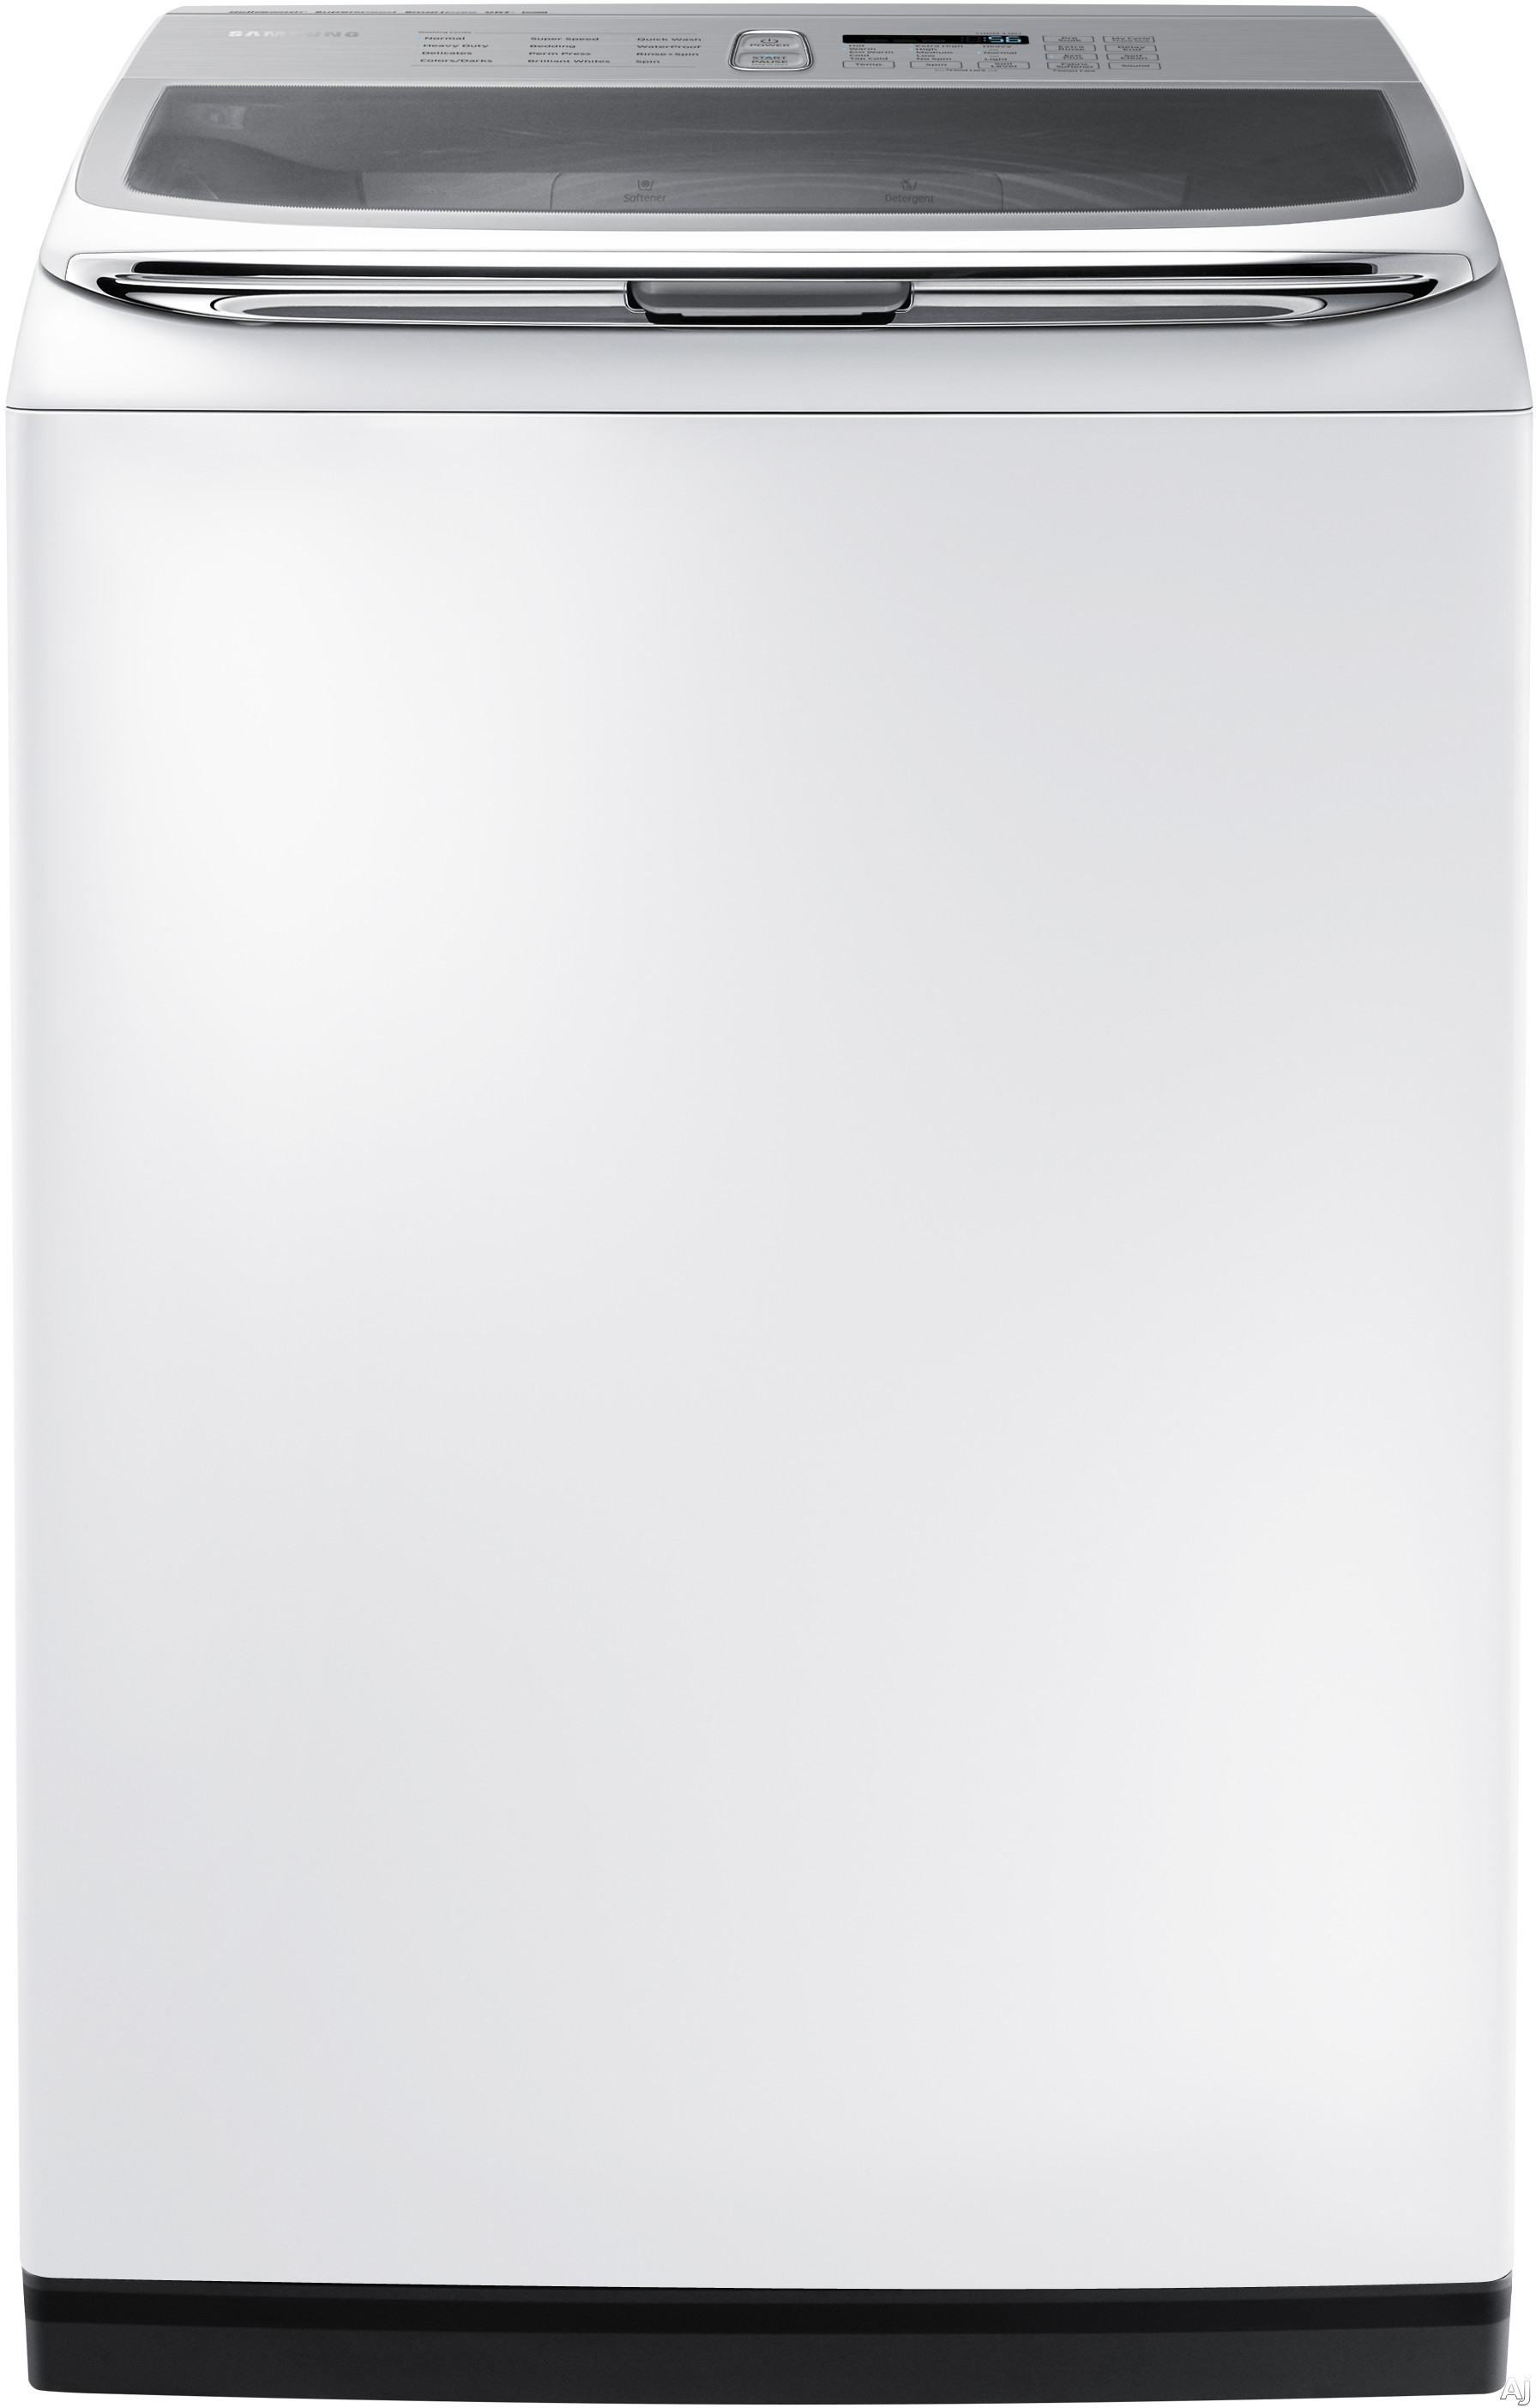 Samsung - Activewash 5.0 Cu. Ft. 12-Cycle High-Efficiency Top-Loading Washer - White WA50K8600AW